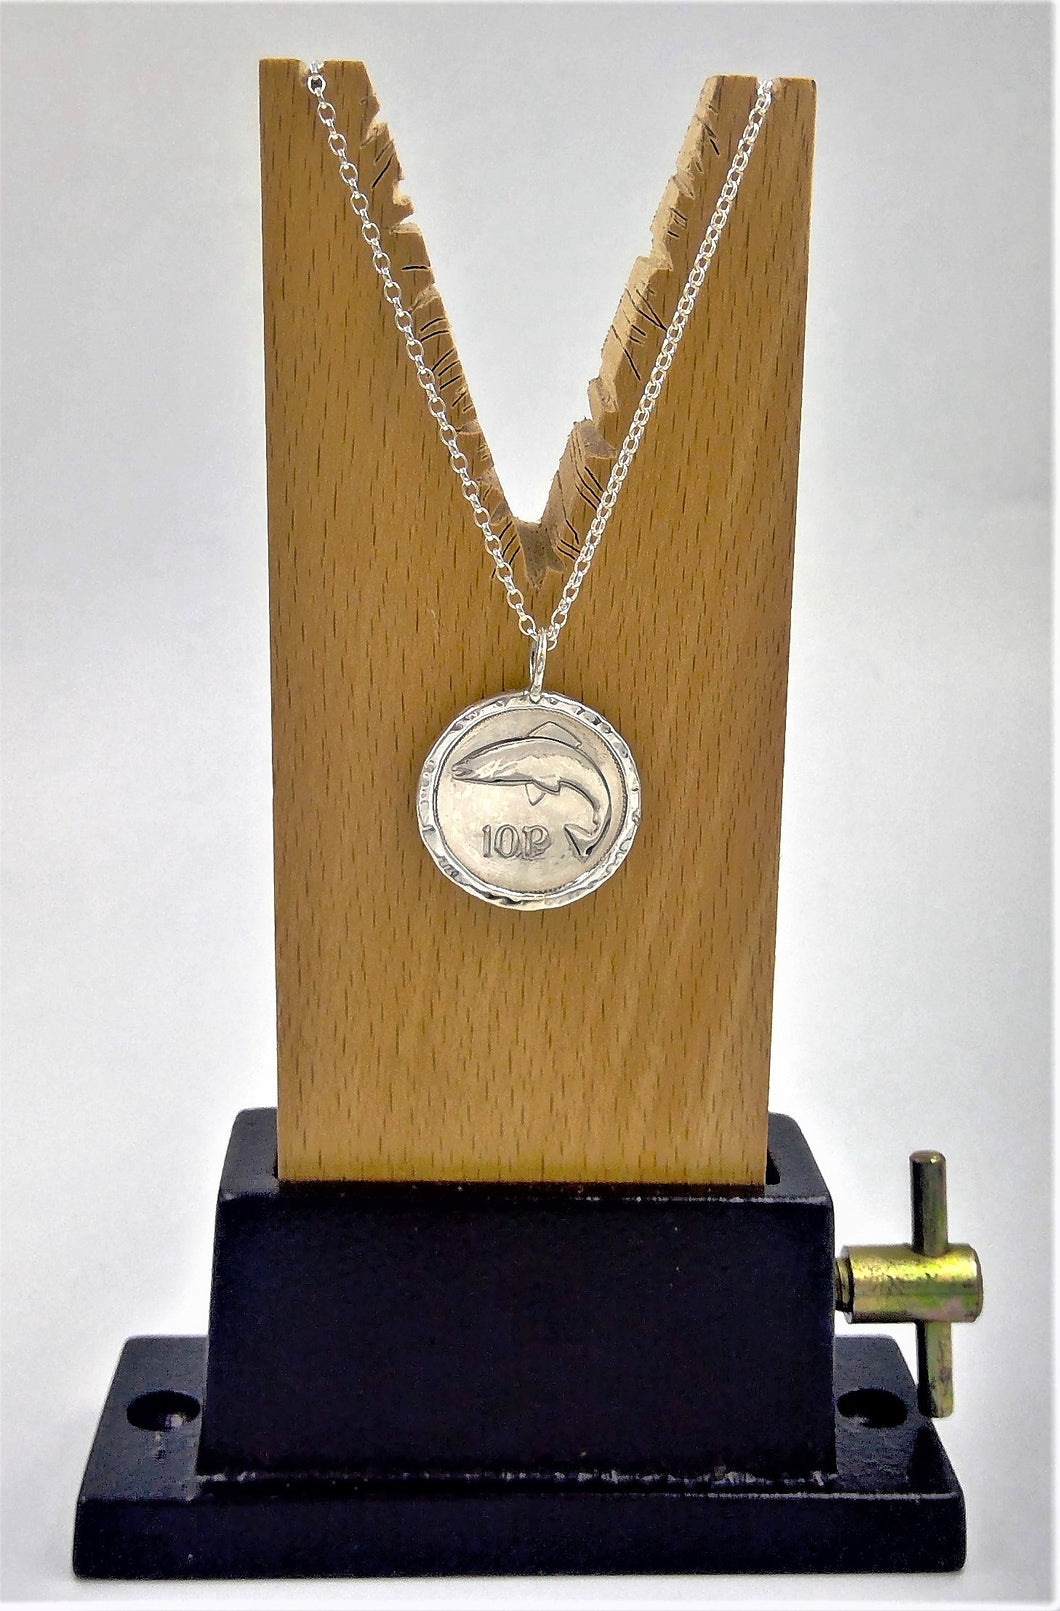 '10p' (new) Coin pendant